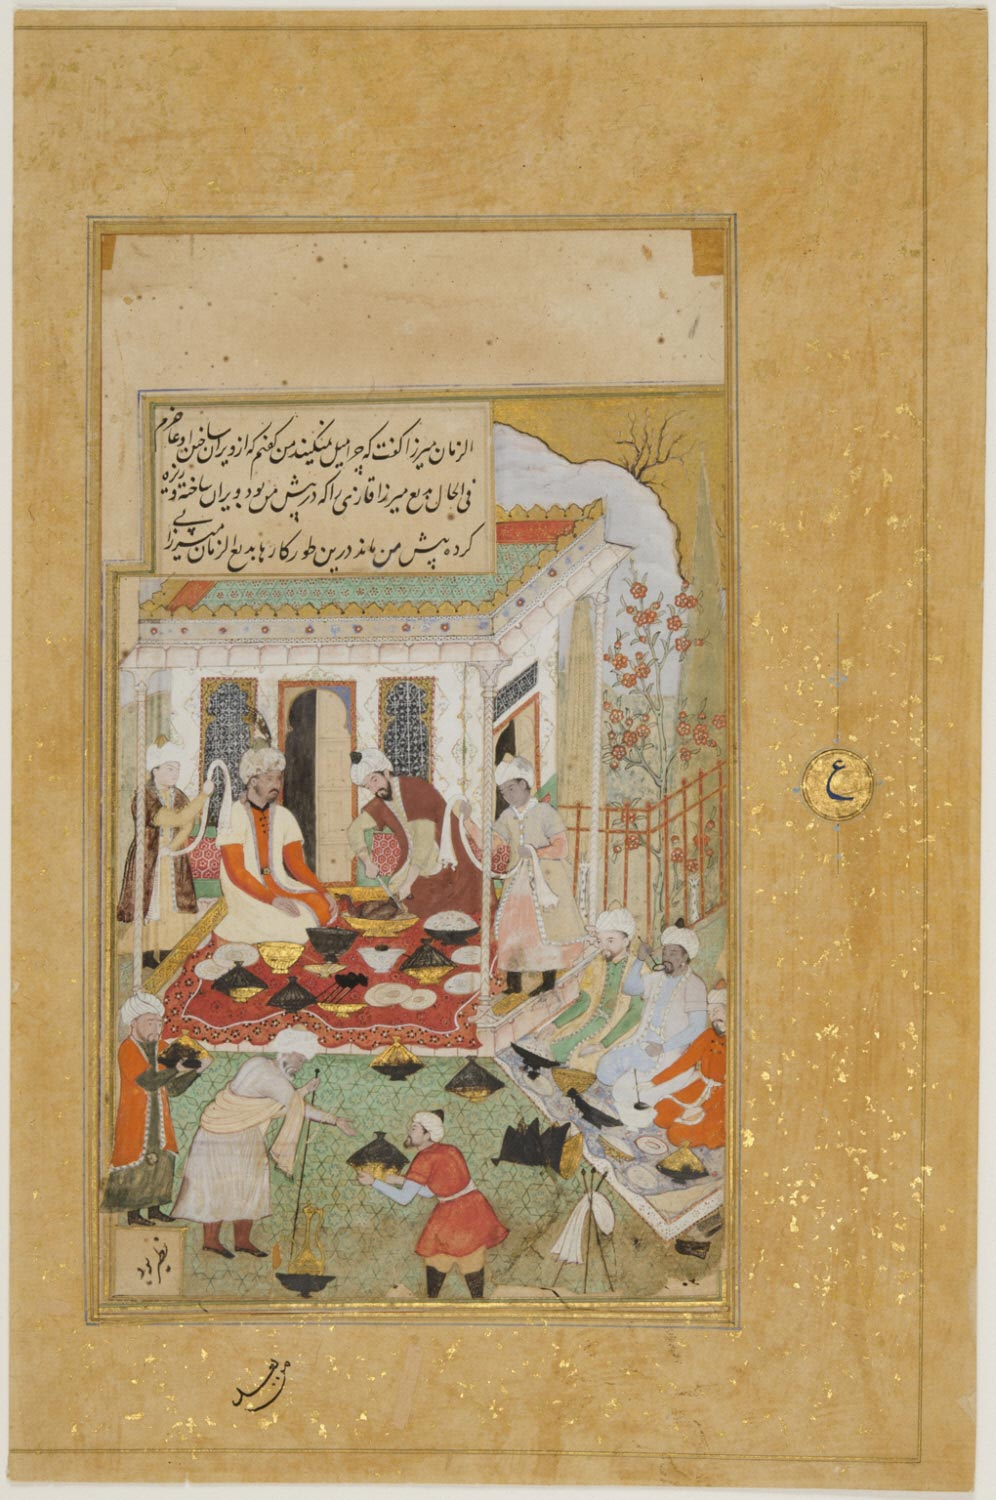 At a Party Given in 1507 for Emperor Babur, a Roast Duck Is Carved for Him By His Cousin